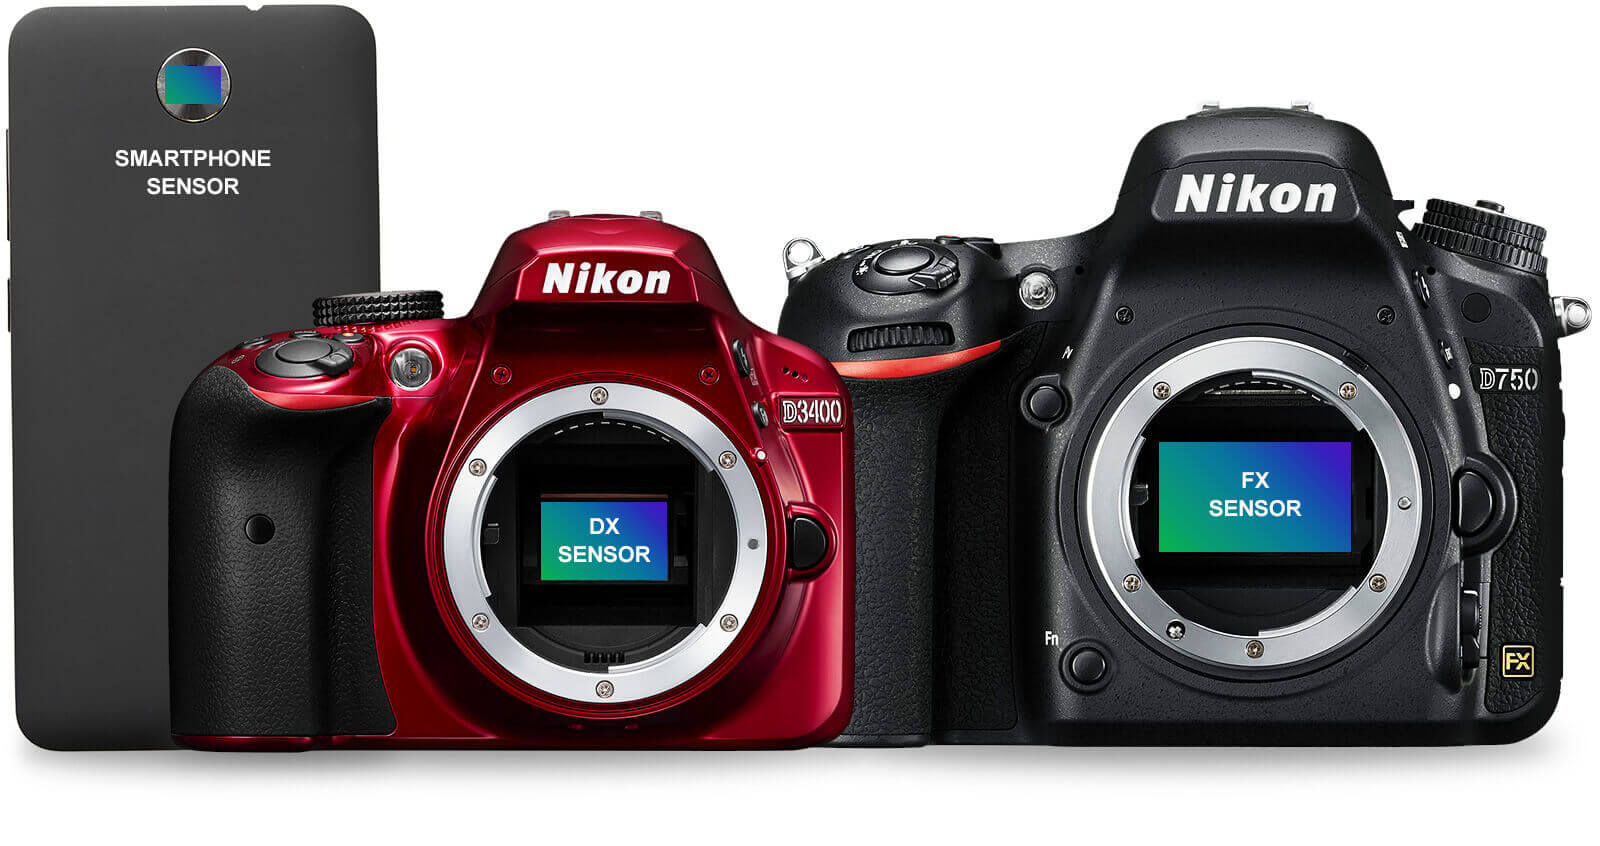 Divine Phone Sensor Dx Sensor Fx Sensor Dslr Cameras Nikon Dx Vs Fx Focal Length Dx Vs Fx Camera Body dpreview Dx Vs Fx